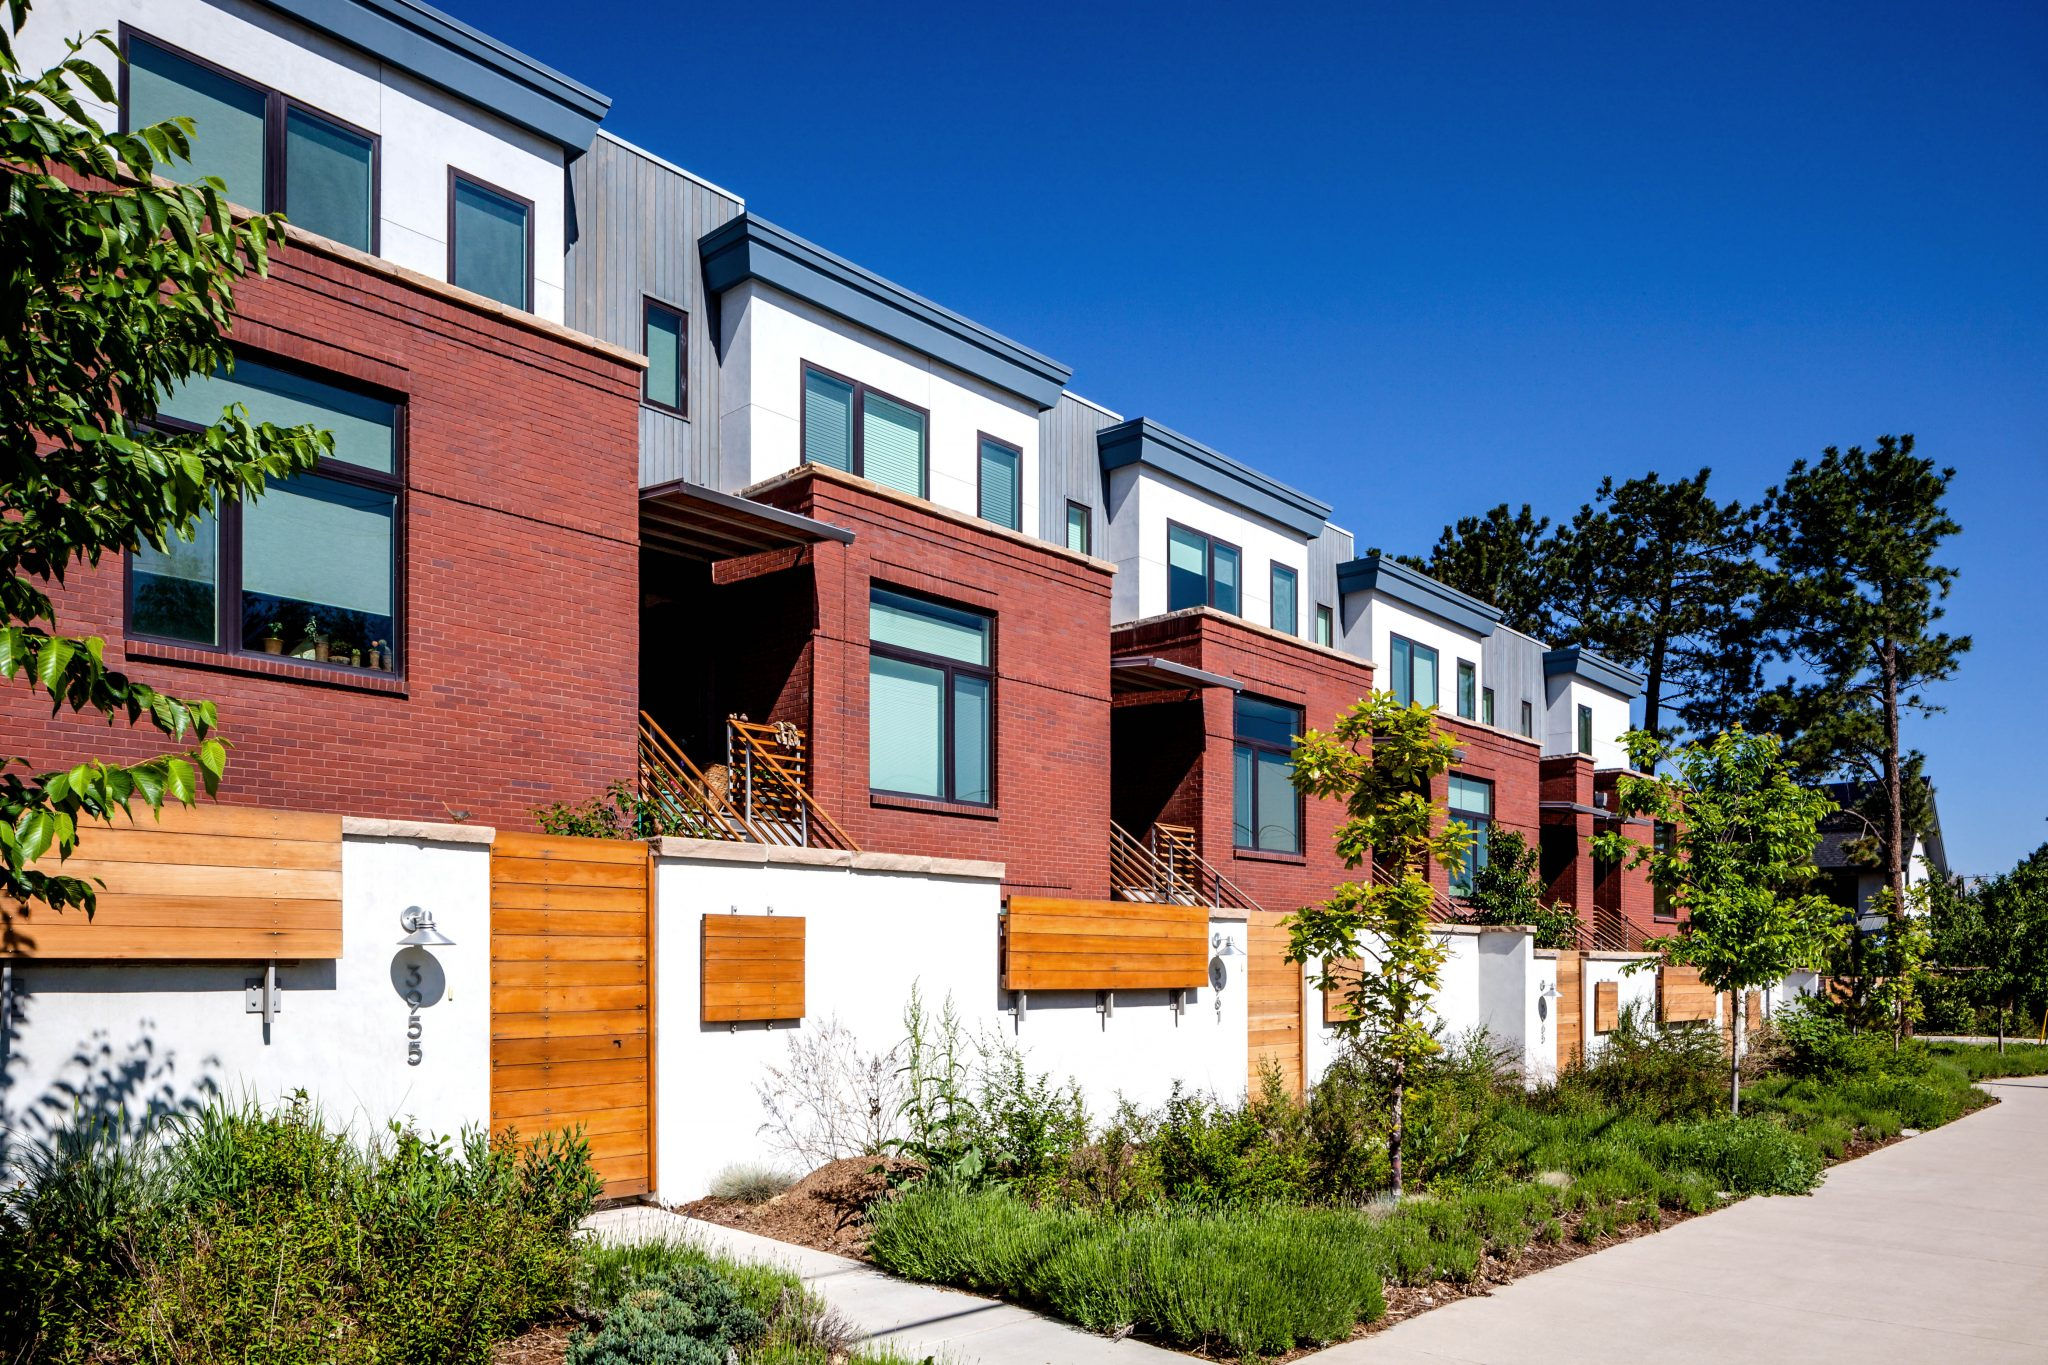 Broadway Townhomes Front Facade from Sidewalk